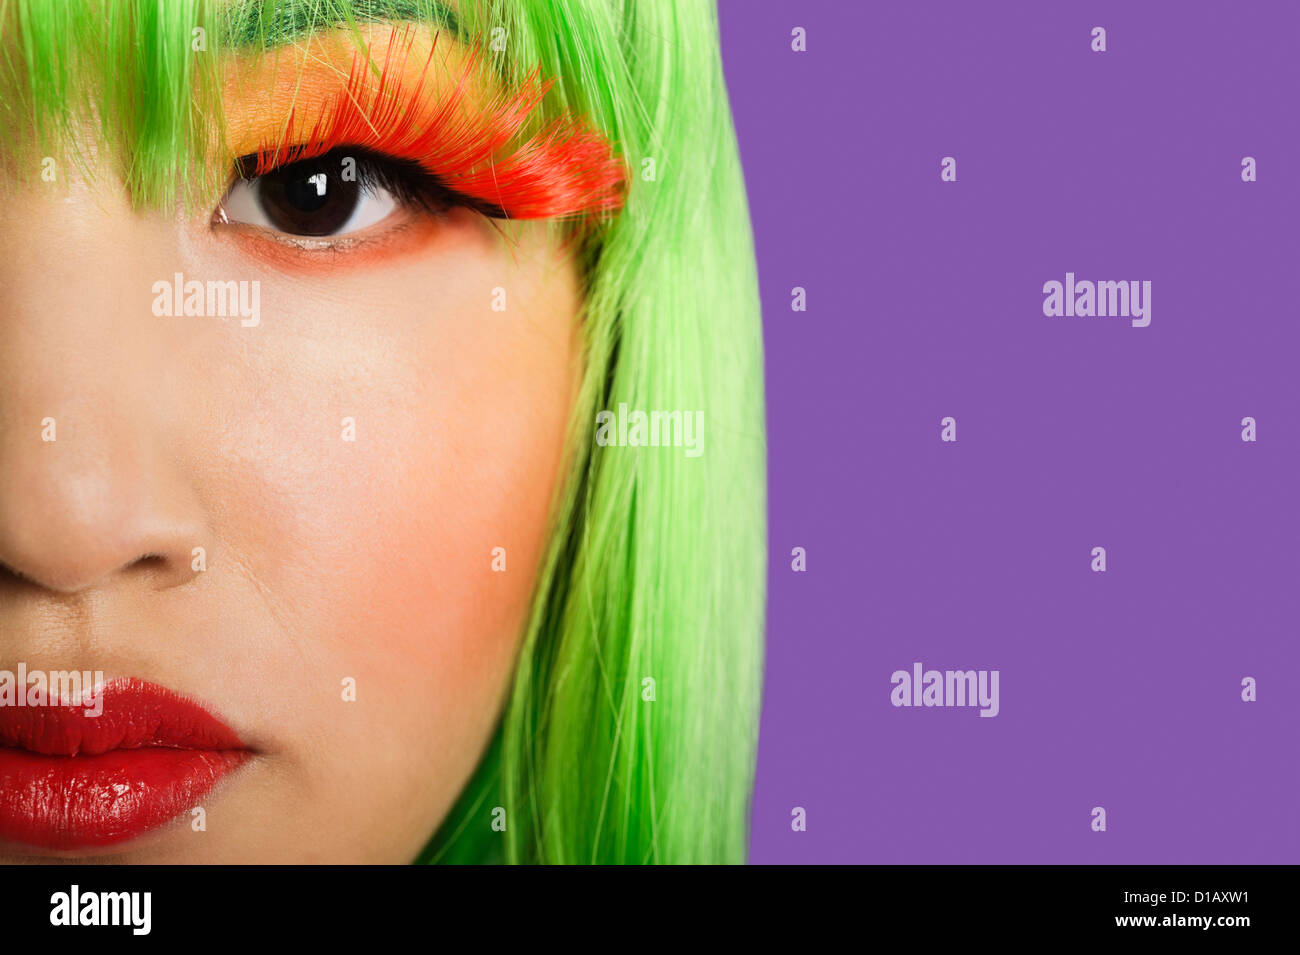 Cropped image young woman wearing false eyelashes  purple background - Stock Image